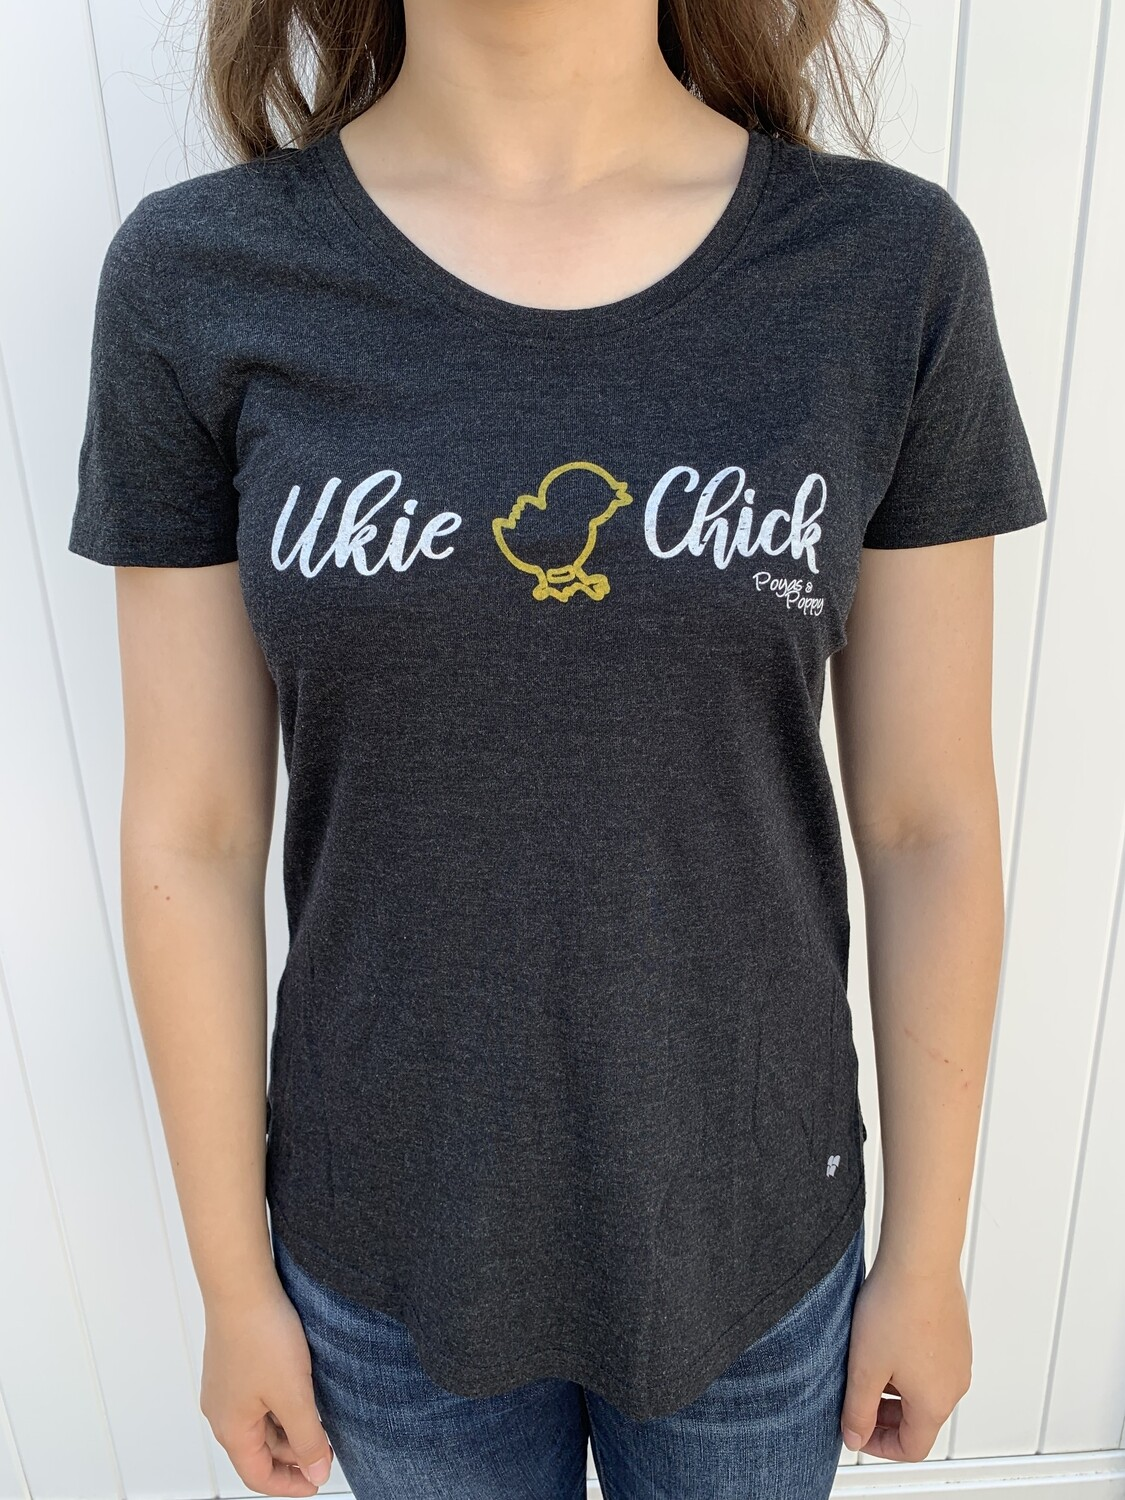 Ukie Chick Better Fit Ladies Tee